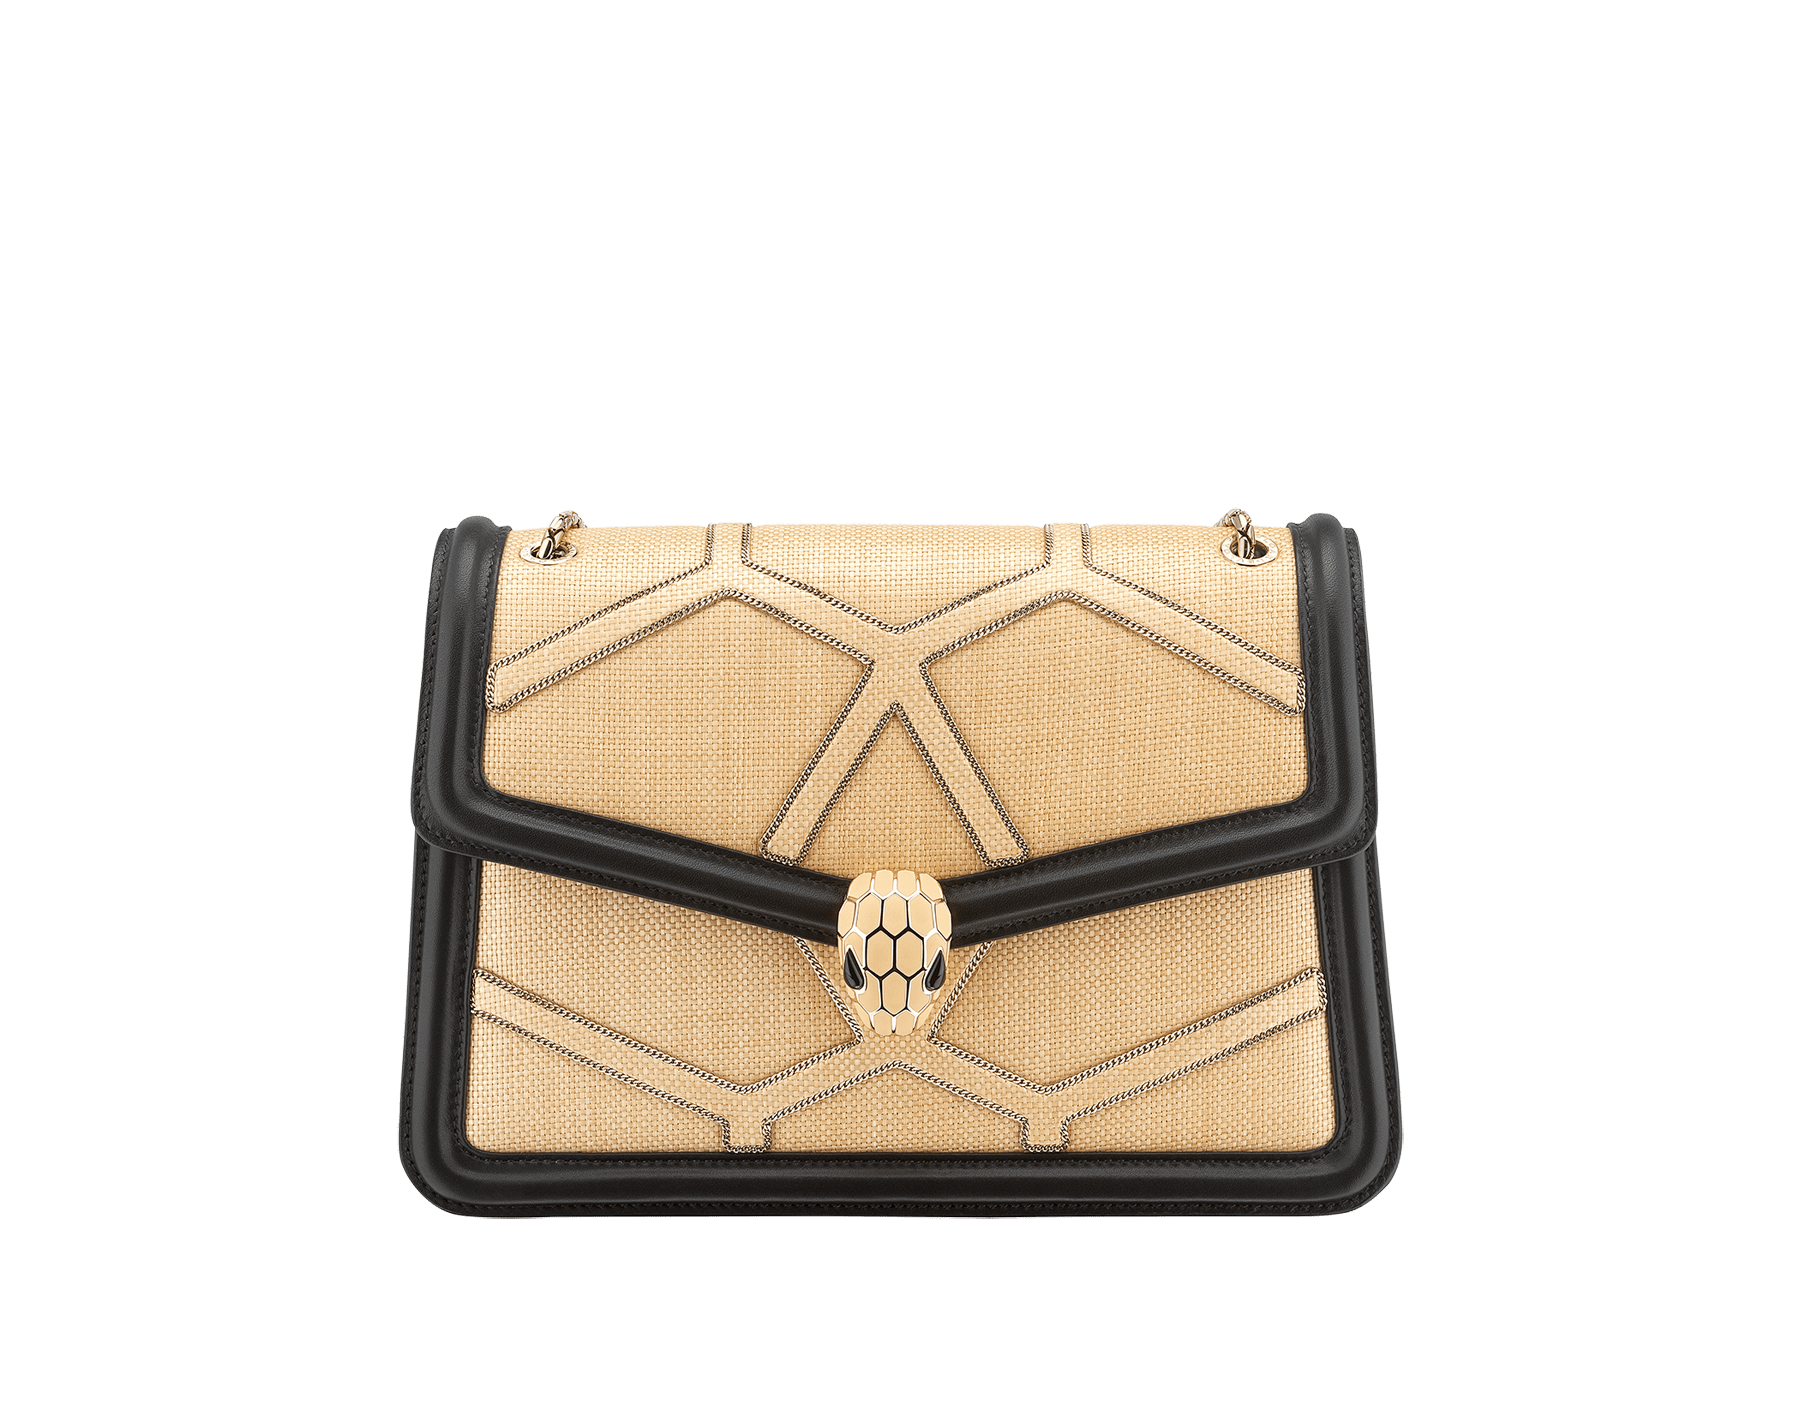 """""""Serpenti Forever """" shoulder bag in beige raffia and black nappa leather internal lining. Alluring light gold-plated brass snakehead closure enhanced with full matte Natural beige enamel and black onyx eyes. 290904 image 1"""